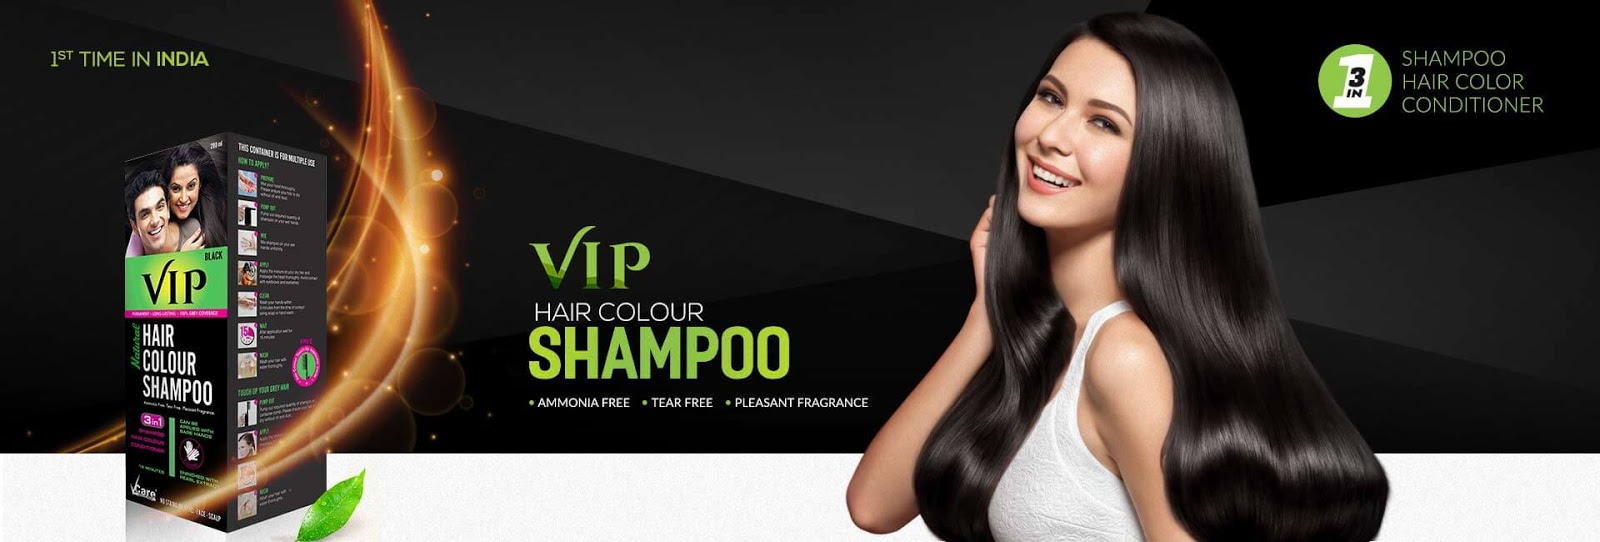 Best Solution For Grey Hair Vip Hair Colour Vip Hair Colour Shampoo